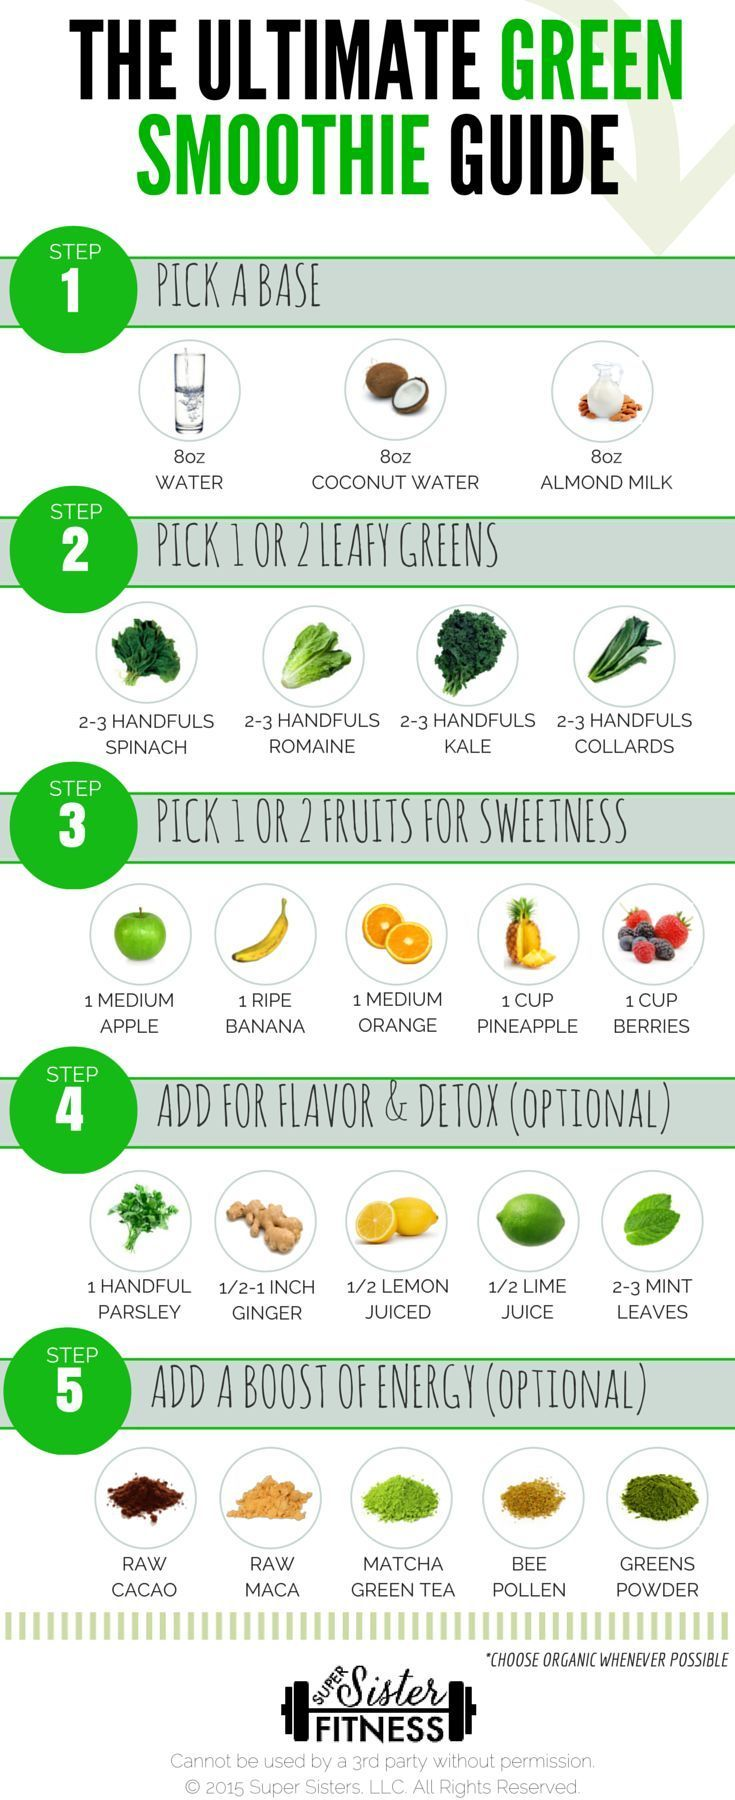 Week 1 detox how to lose weight